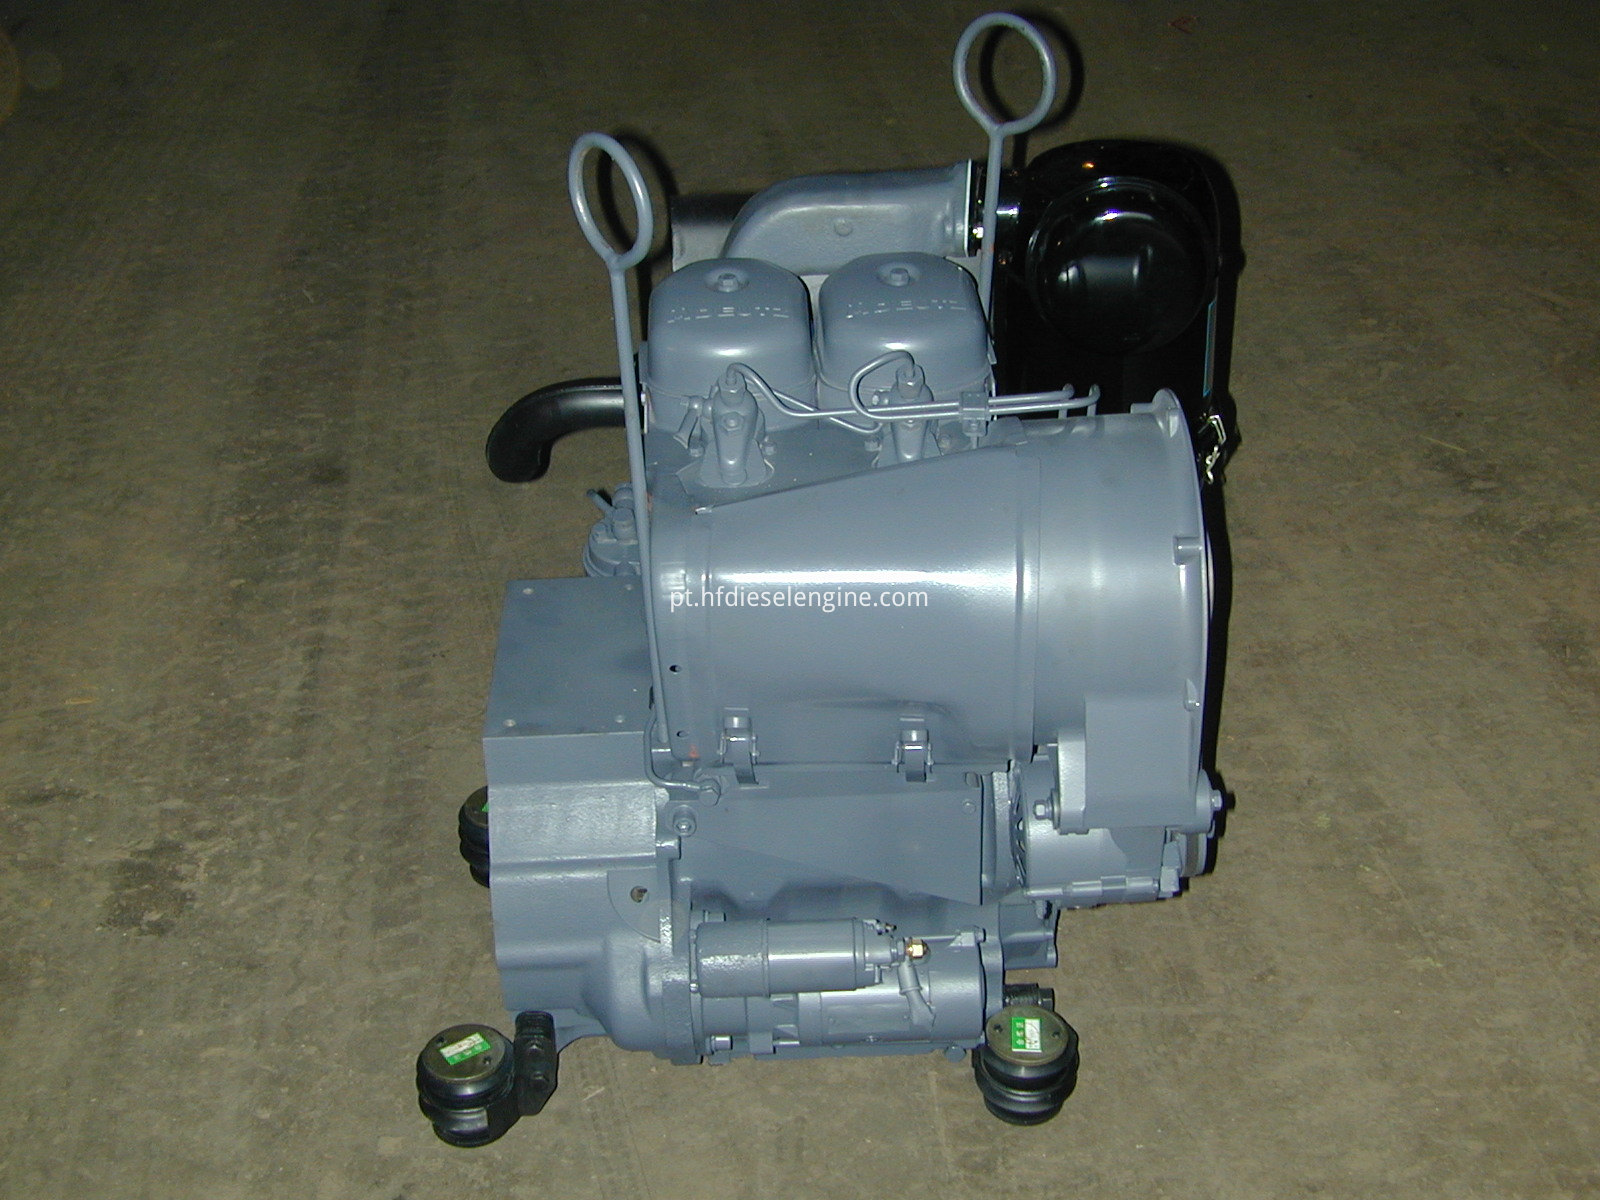 deutz air cooled 511 diesel engine